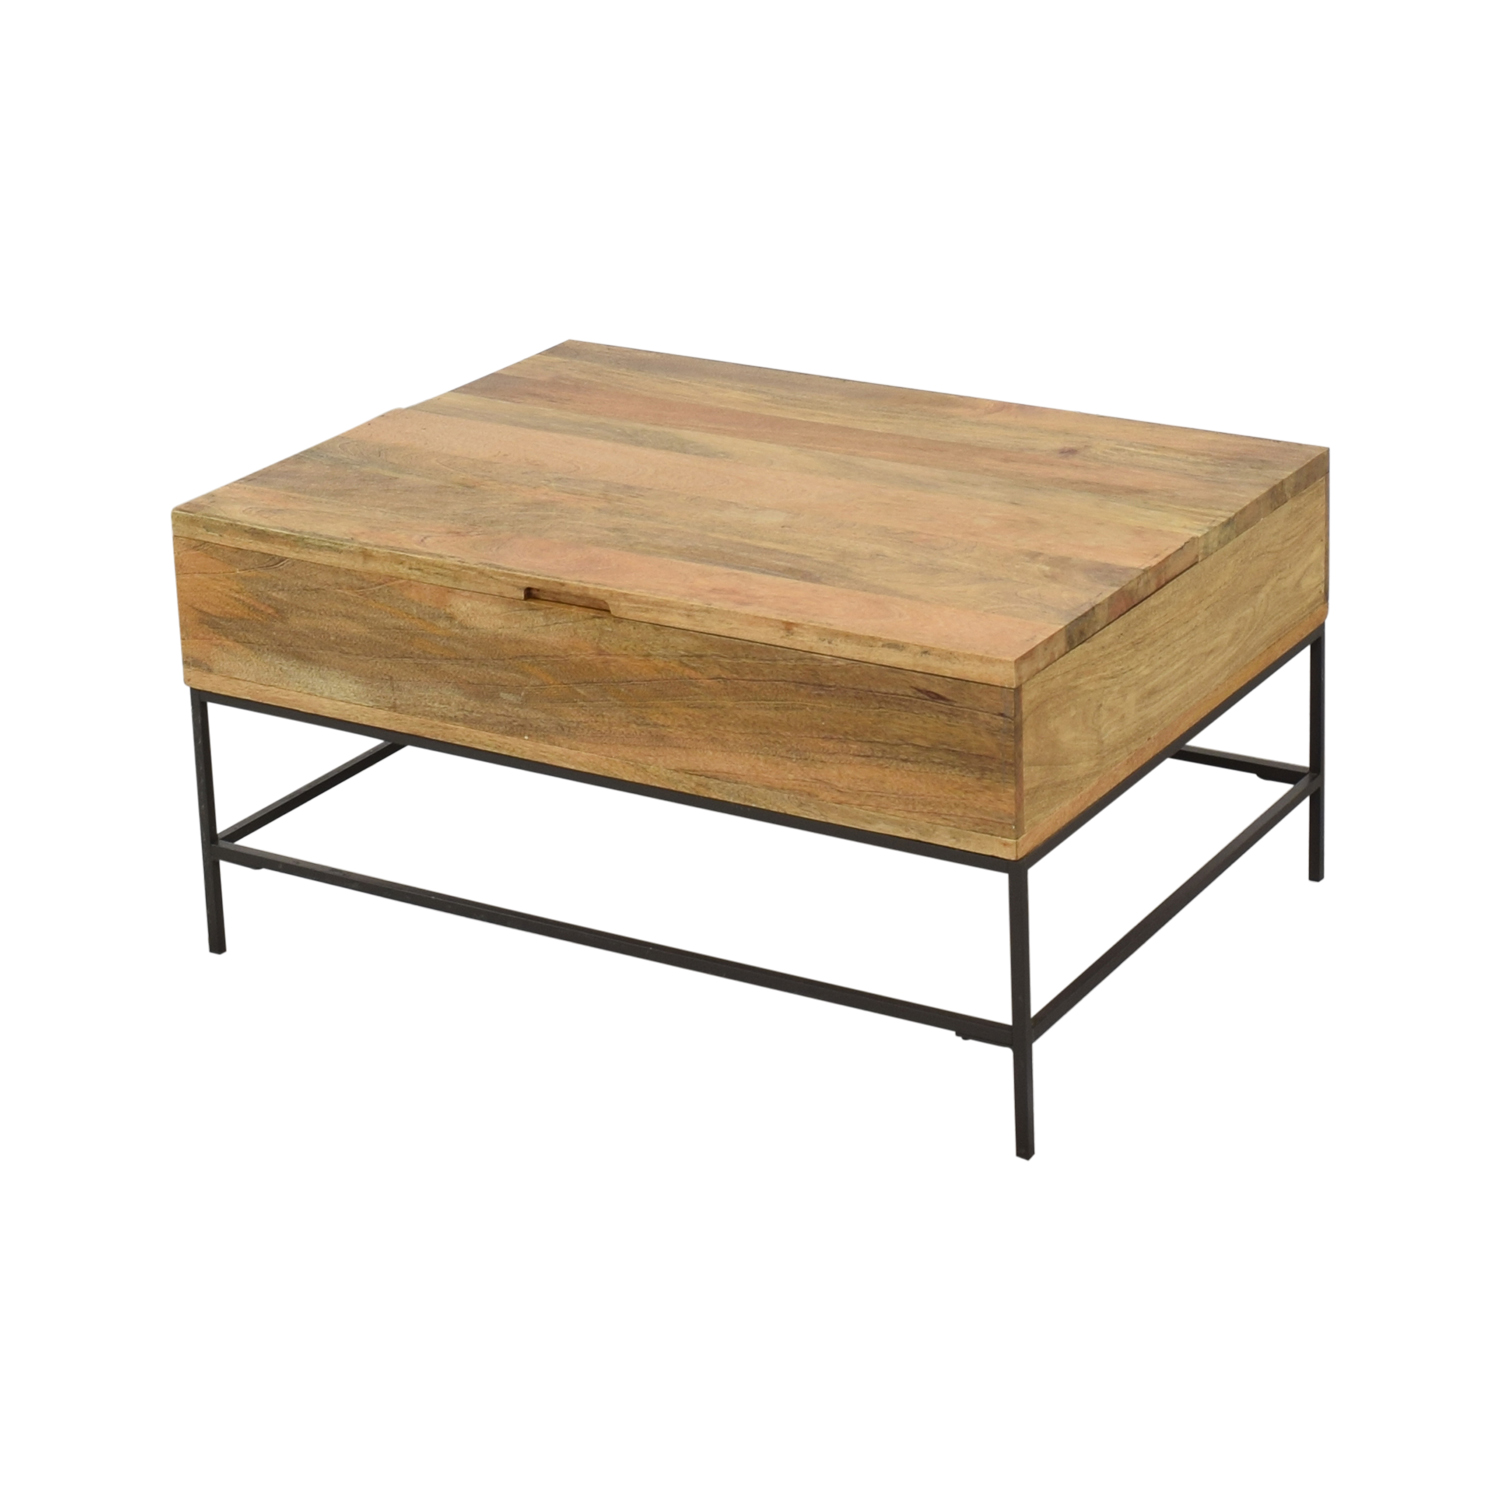 West Elm West Elm Industrial Storage Coffee Table Small ma